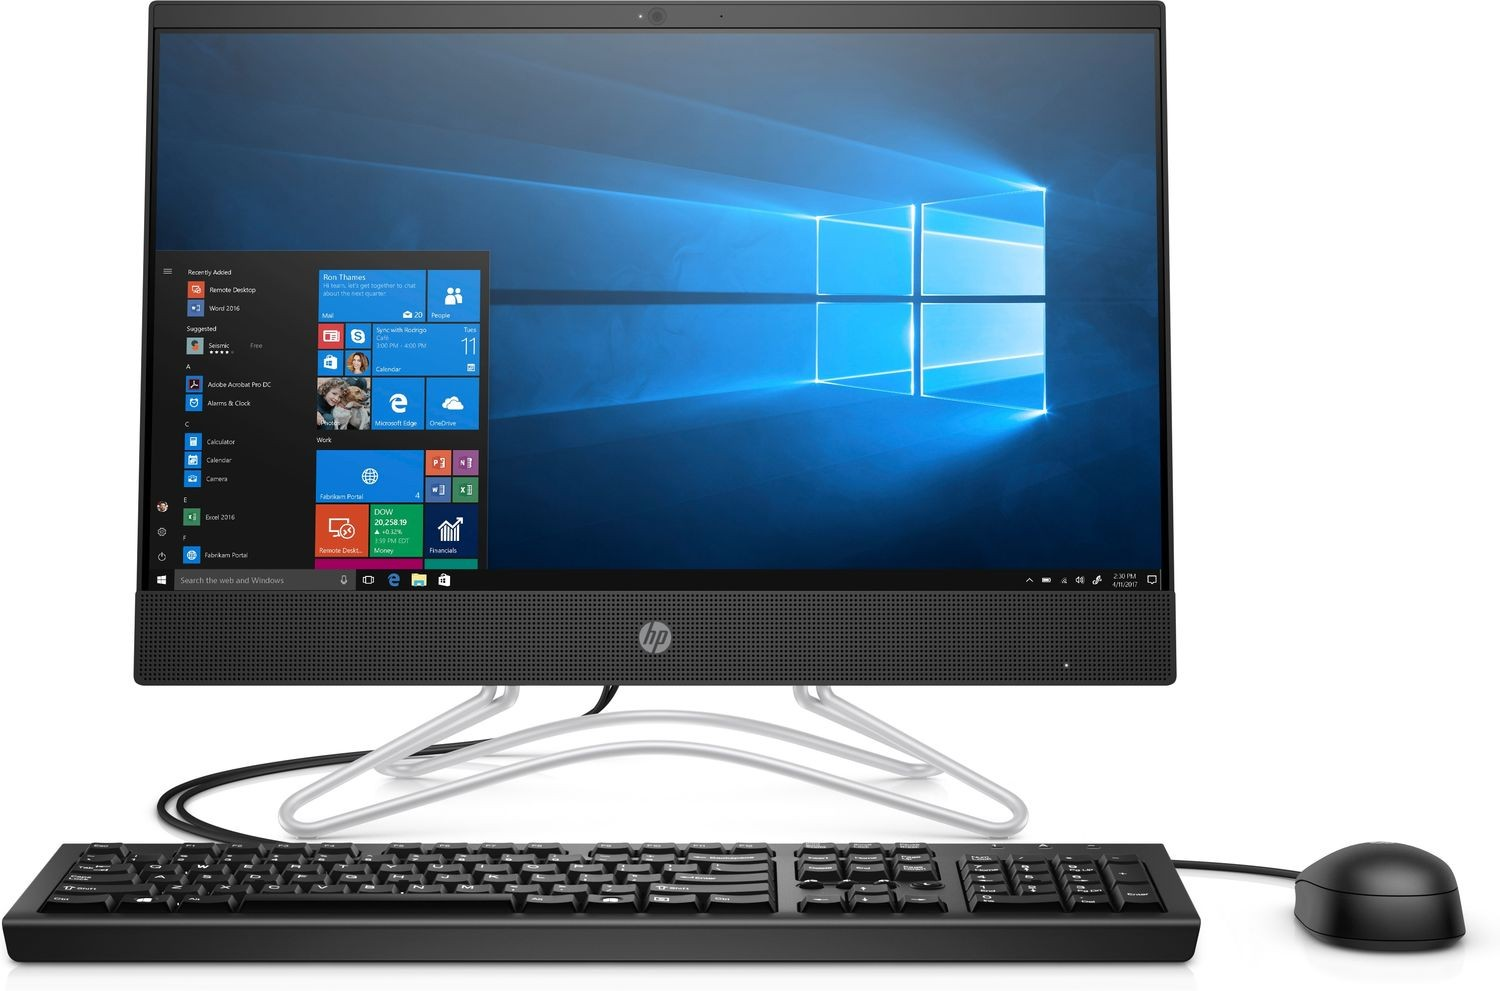 HP 200 G3 All-in-One PC Core i3 4GB RAM 1TB HDD